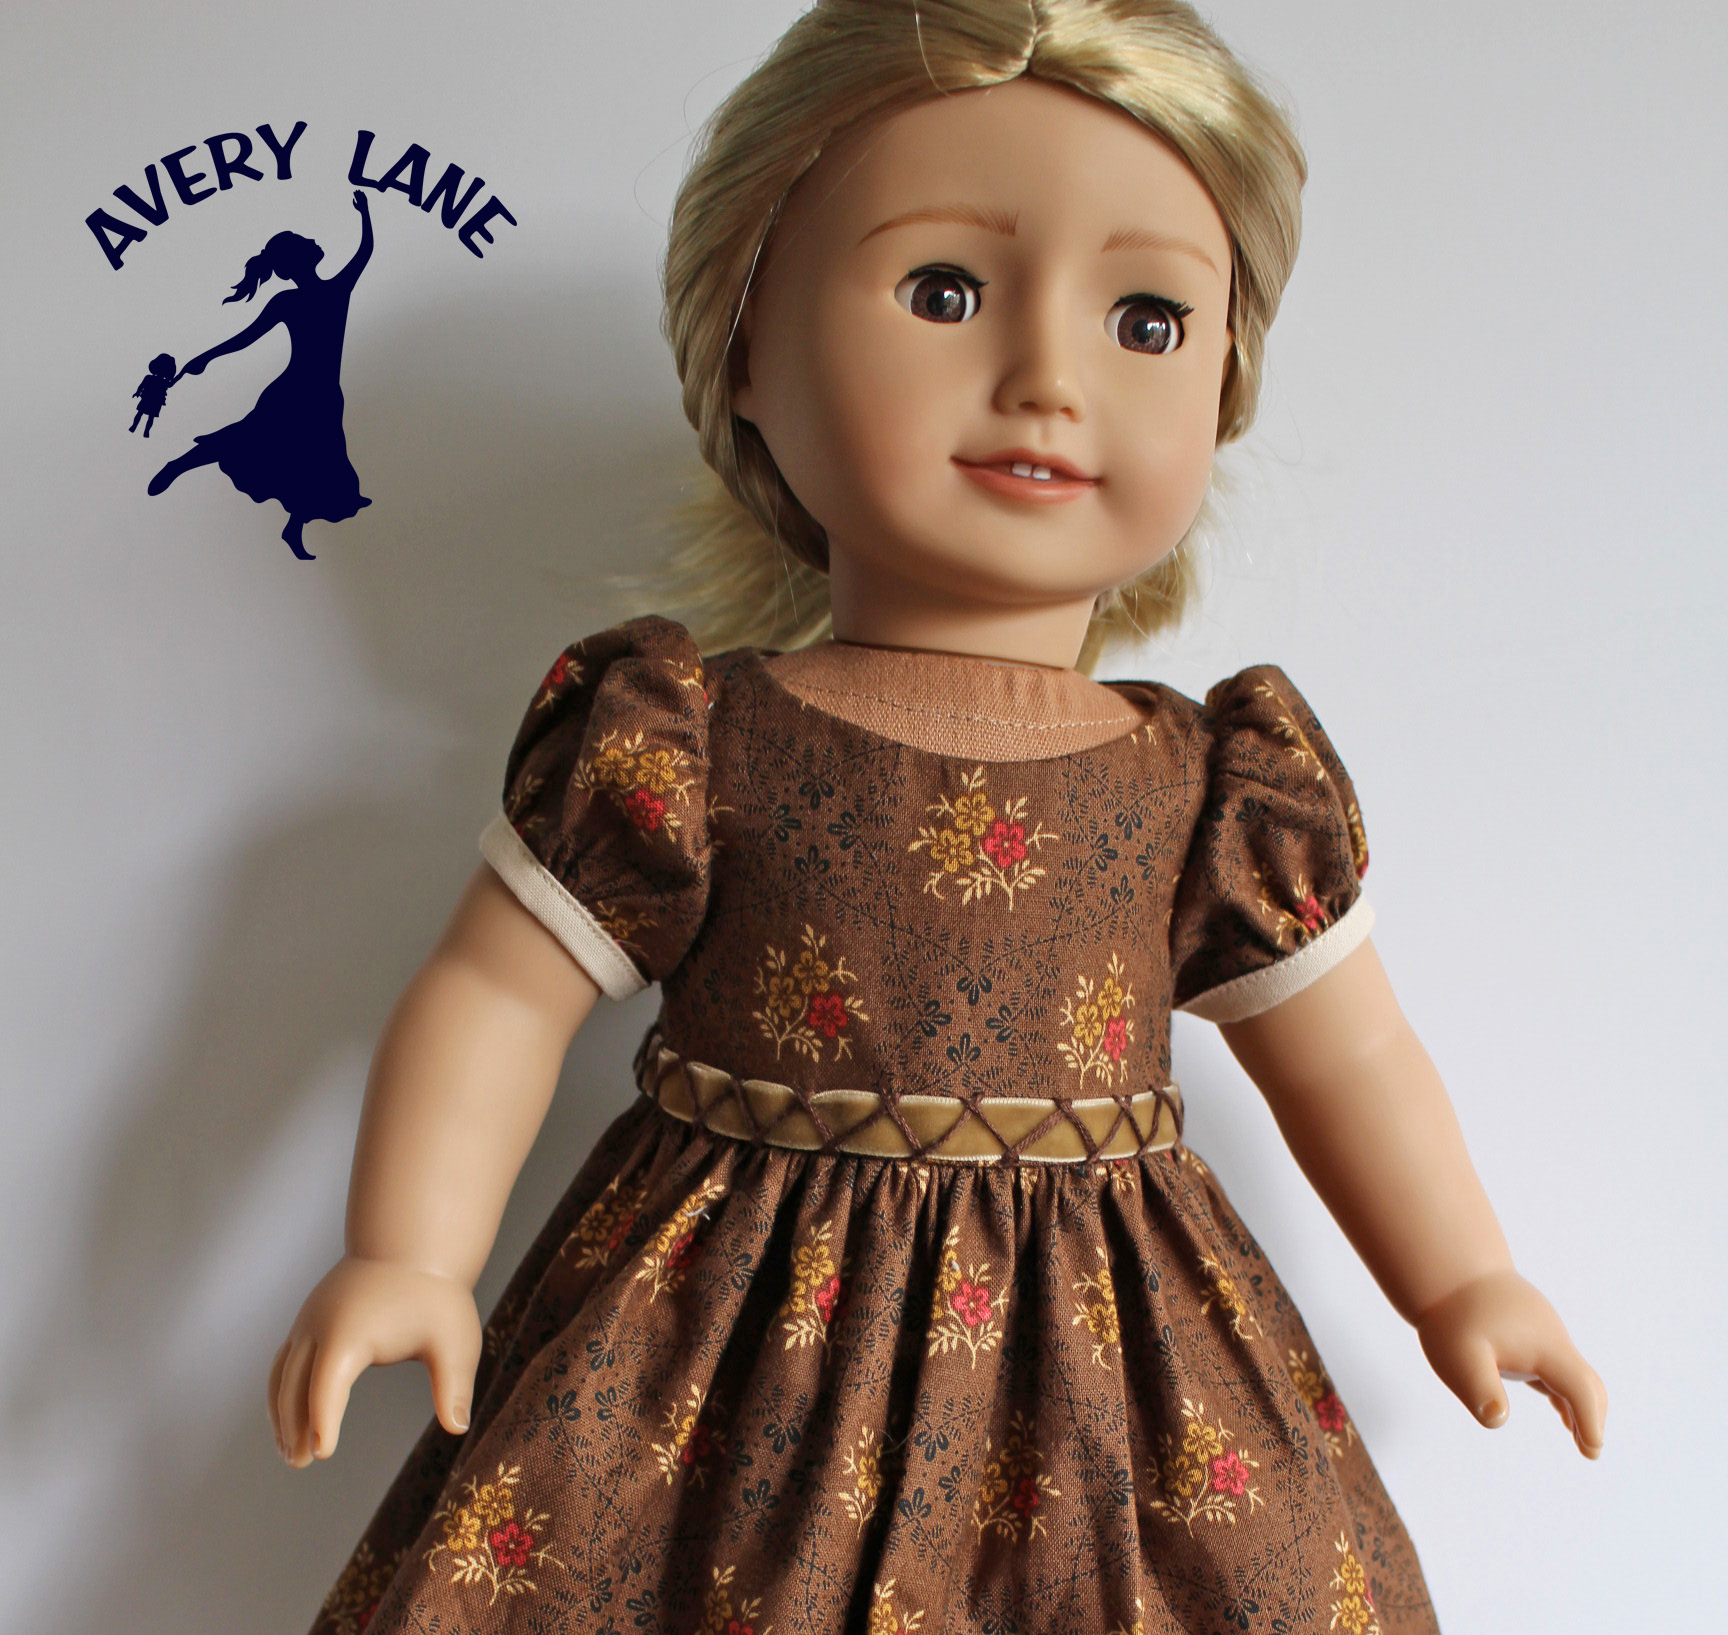 Florrie Dolls 18 inch doll review